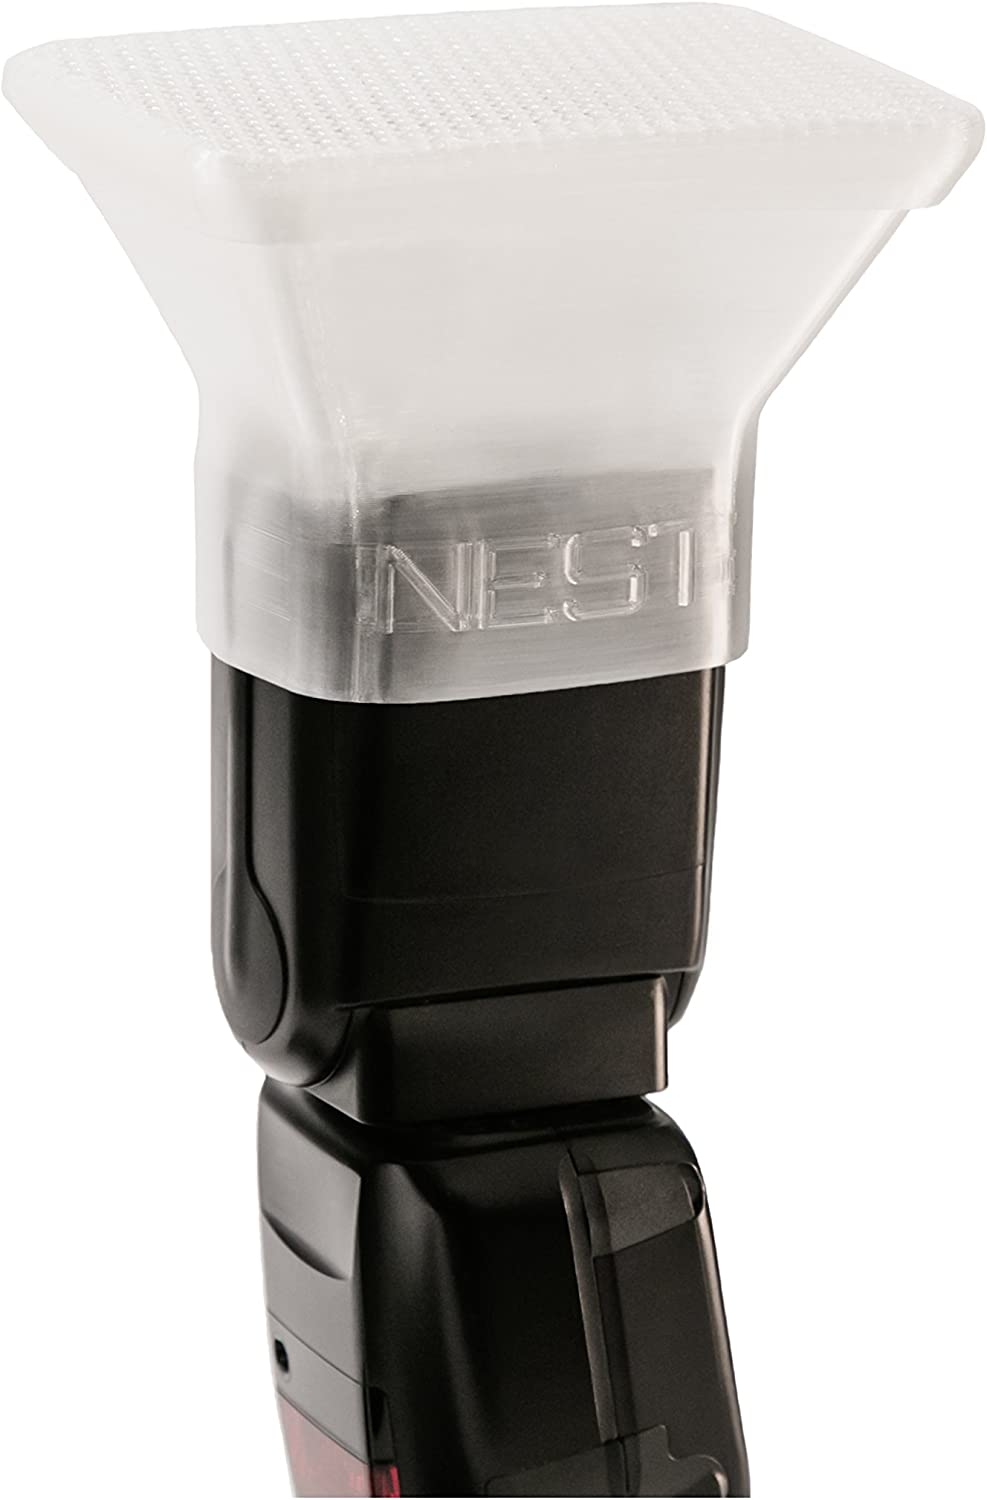 3D FLEX FLASH The NEST Bounce Diffuser for Small Shoe Mount Flashes